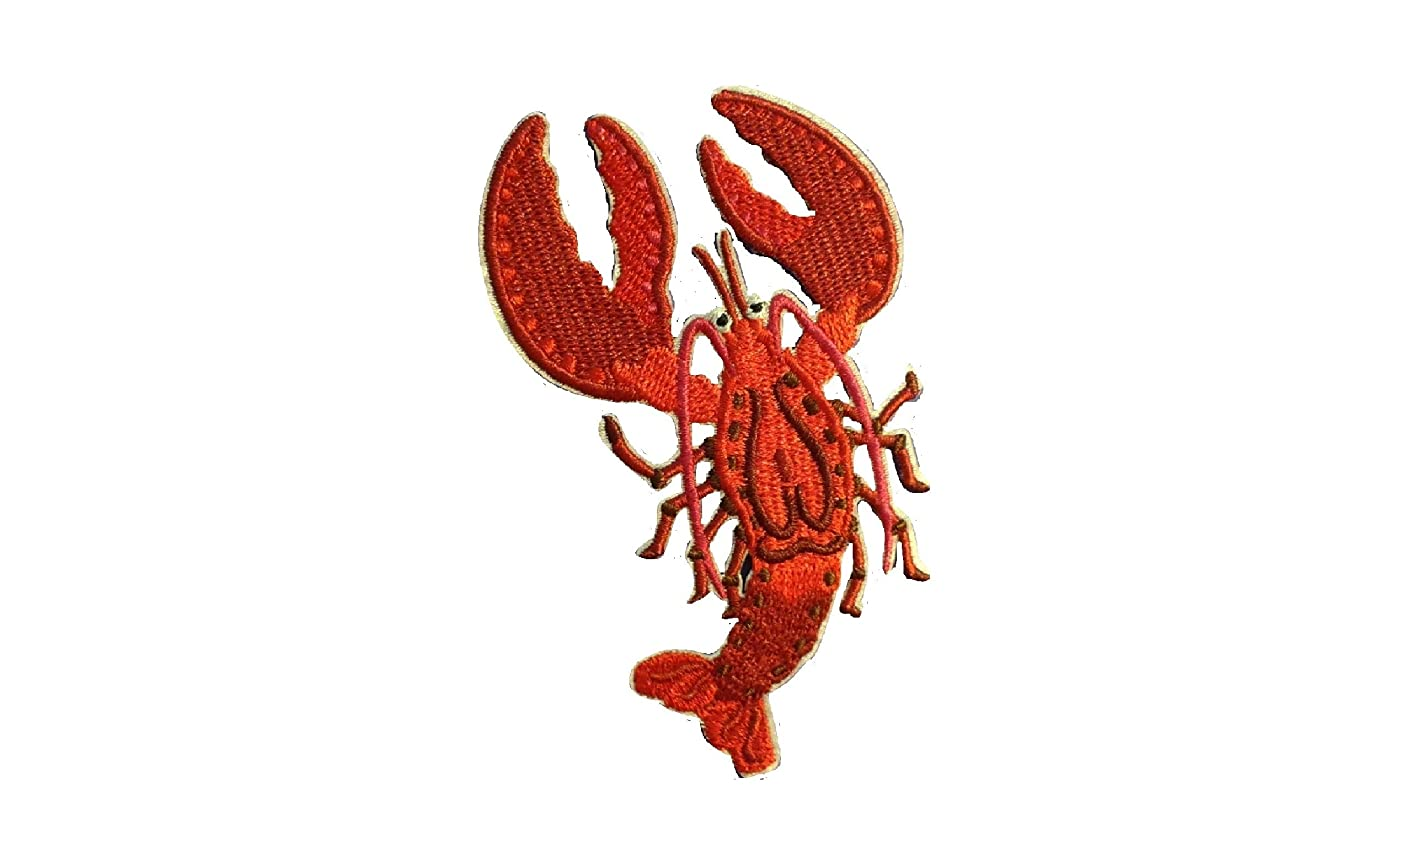 Lobster Iron On Patch Applique Embroidered Motif Fabric Beach Sea Creature Star Fish Marine Scrapbooking Decal 4 x 2.5 inches (10 x 6.3 cm)